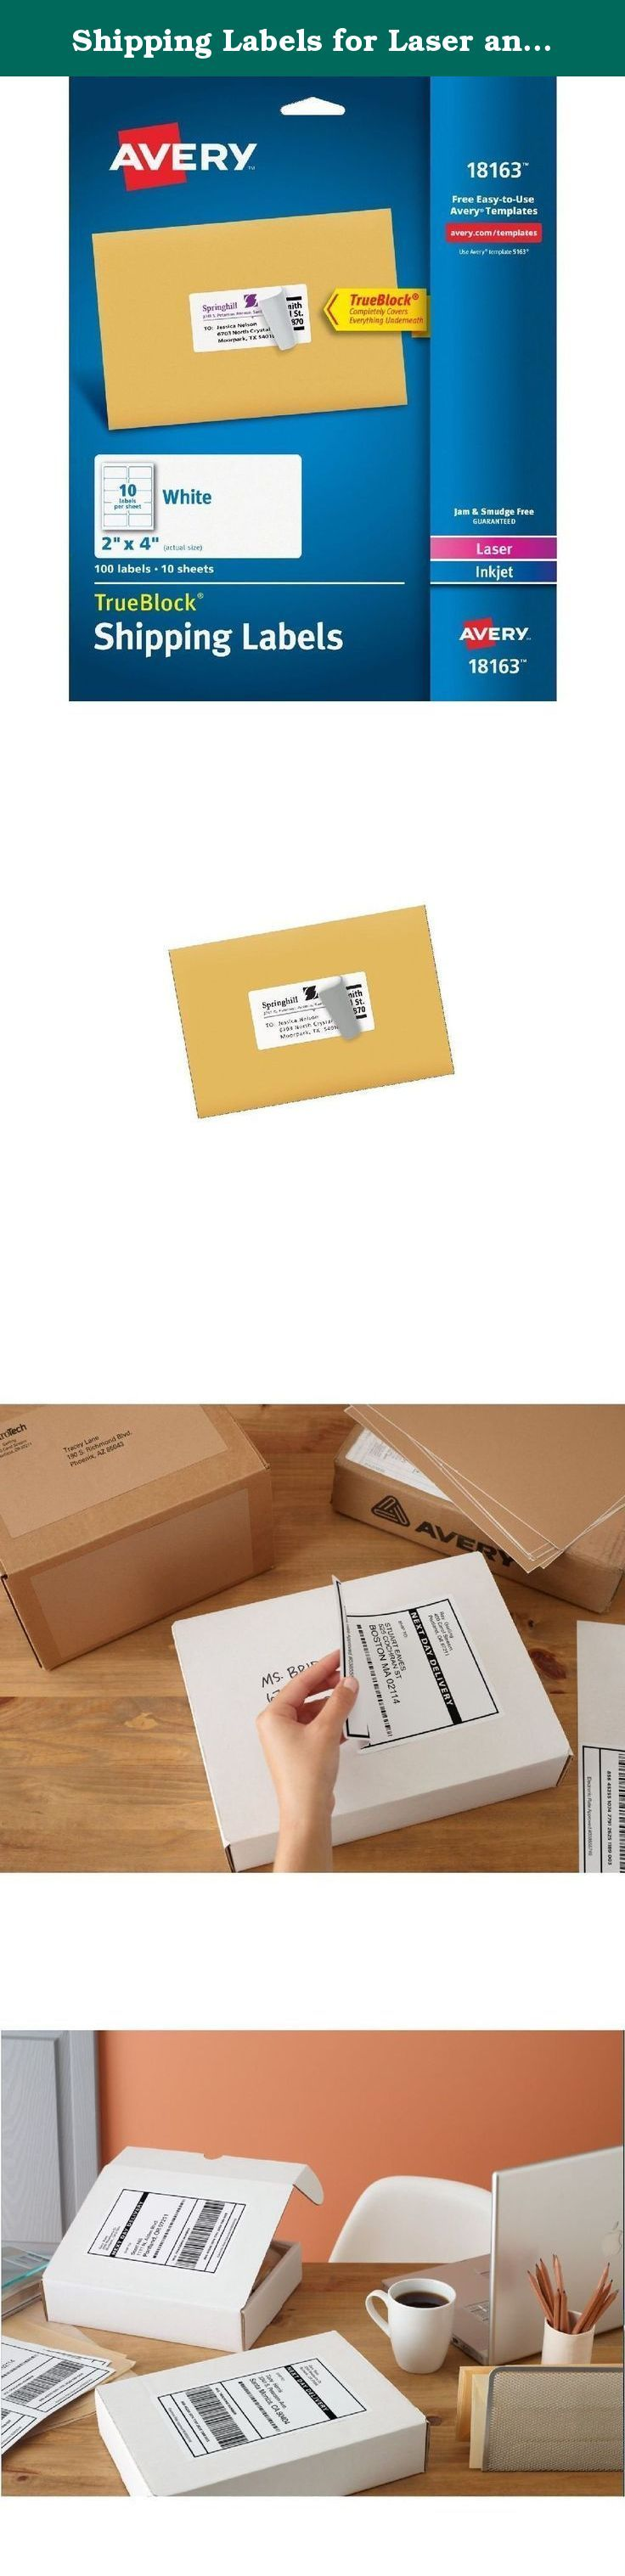 Shipping Labels for Laser and Inkjet Printers White 2 x 4 Inches 100/Pack. Compatible with the Avery Quick Peel Automatic Label Peeler (available separately) so you can peel and apply labels up to two times faster than by handUse white shipping labels for all your shipping and mailing needsCustomize with free tools software and templates from avery.comSave time shipping products with Avery shipping labelsUse white shipping labels for all your shipping and mailing needsCustomize with free...